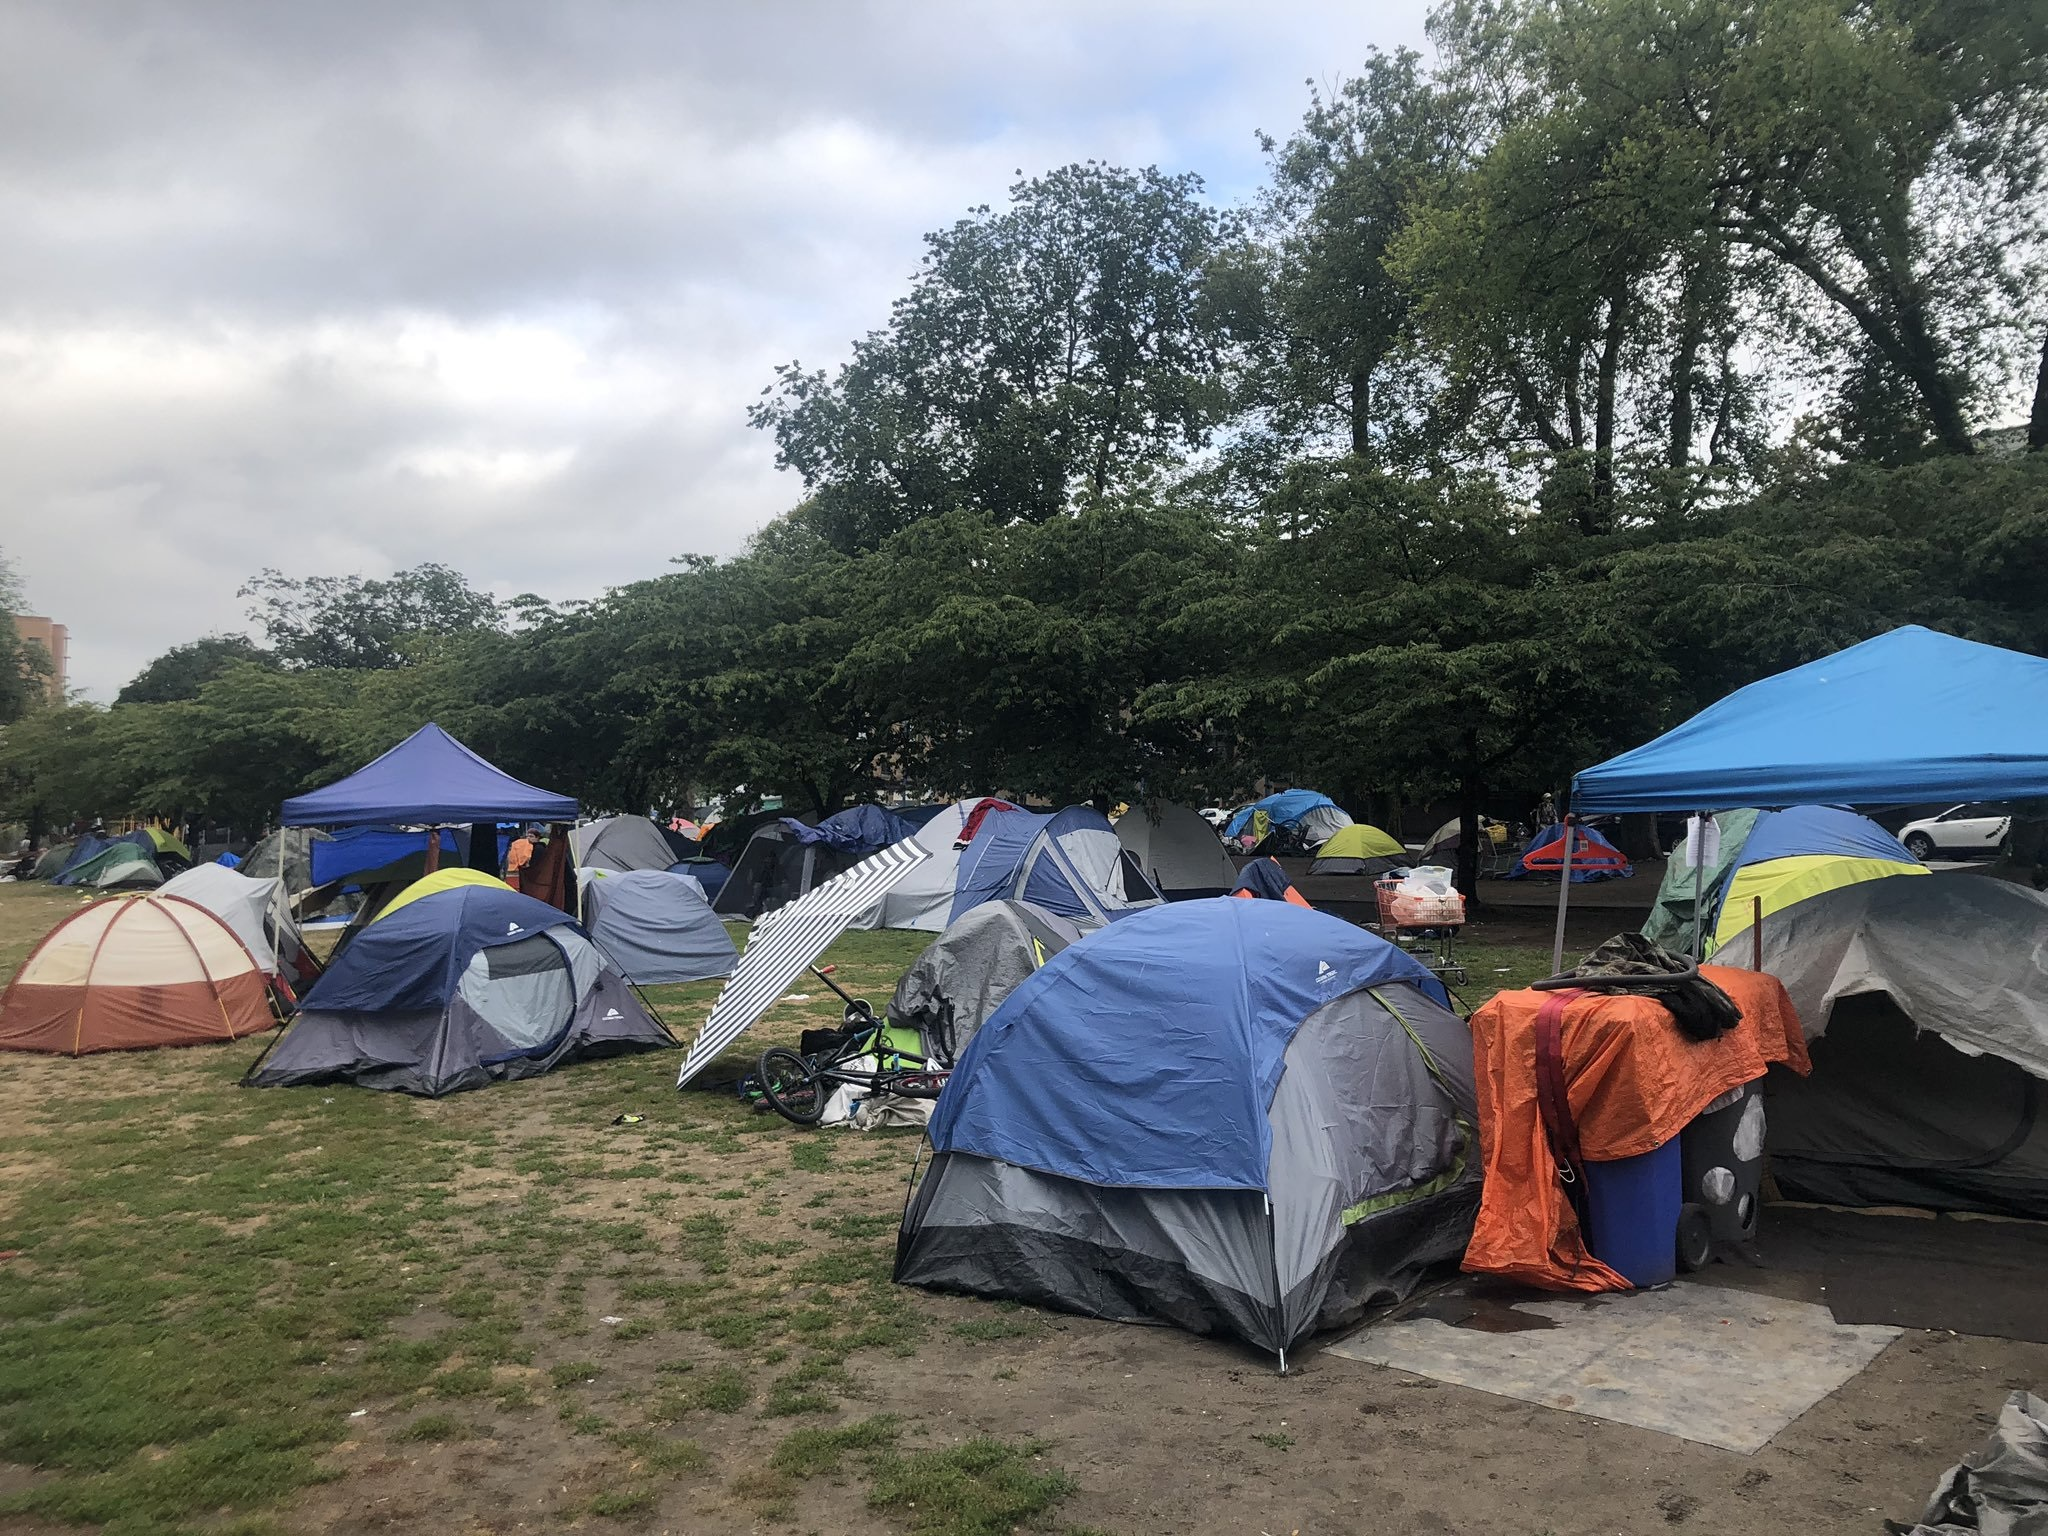 Tent city remains in Oppenheimer Park despite deadline to vacate